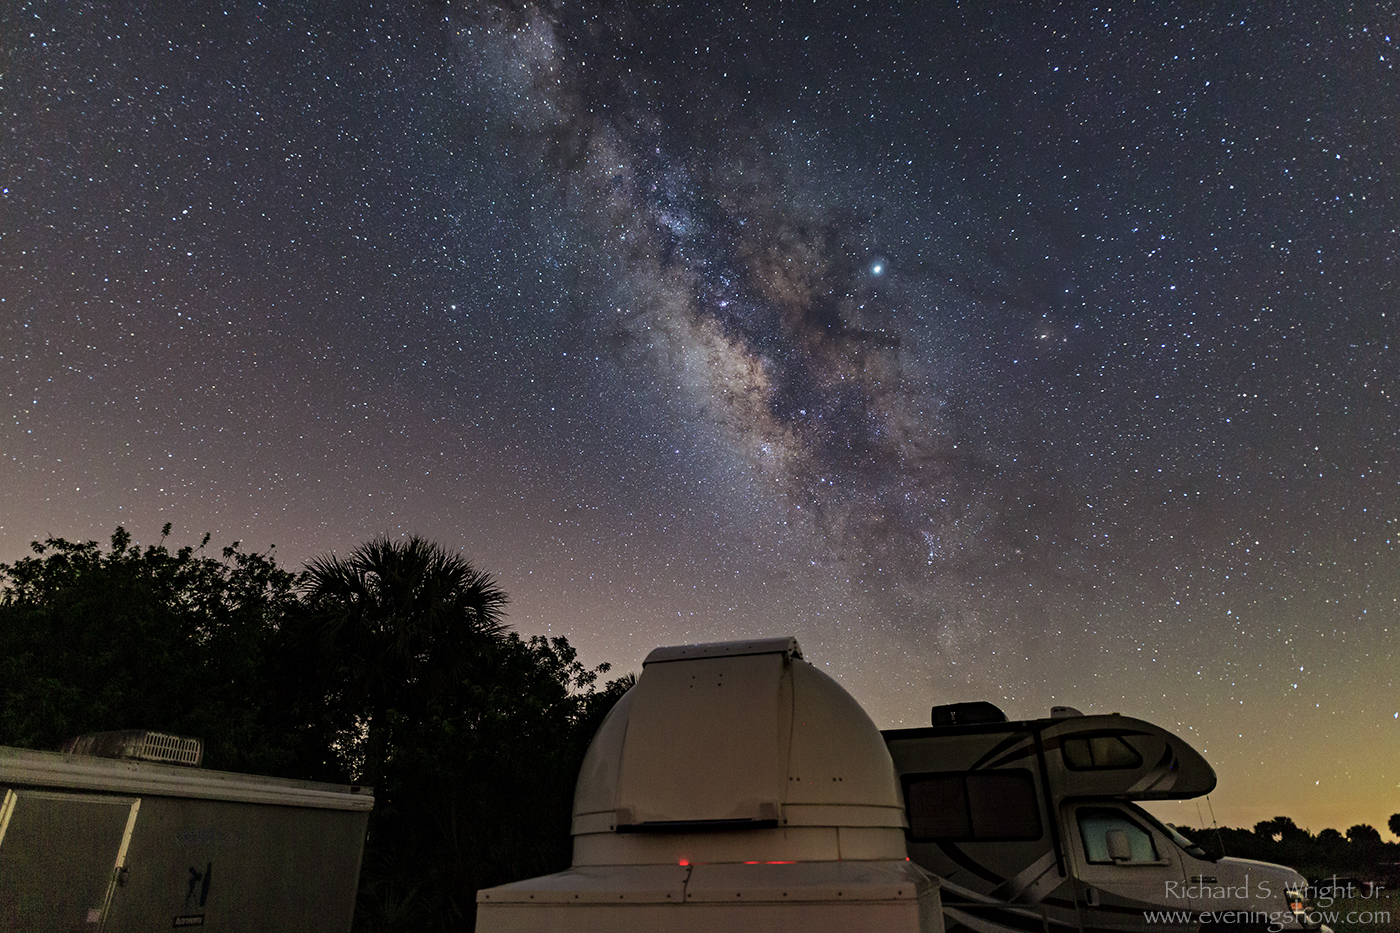 Milky Way over a dome